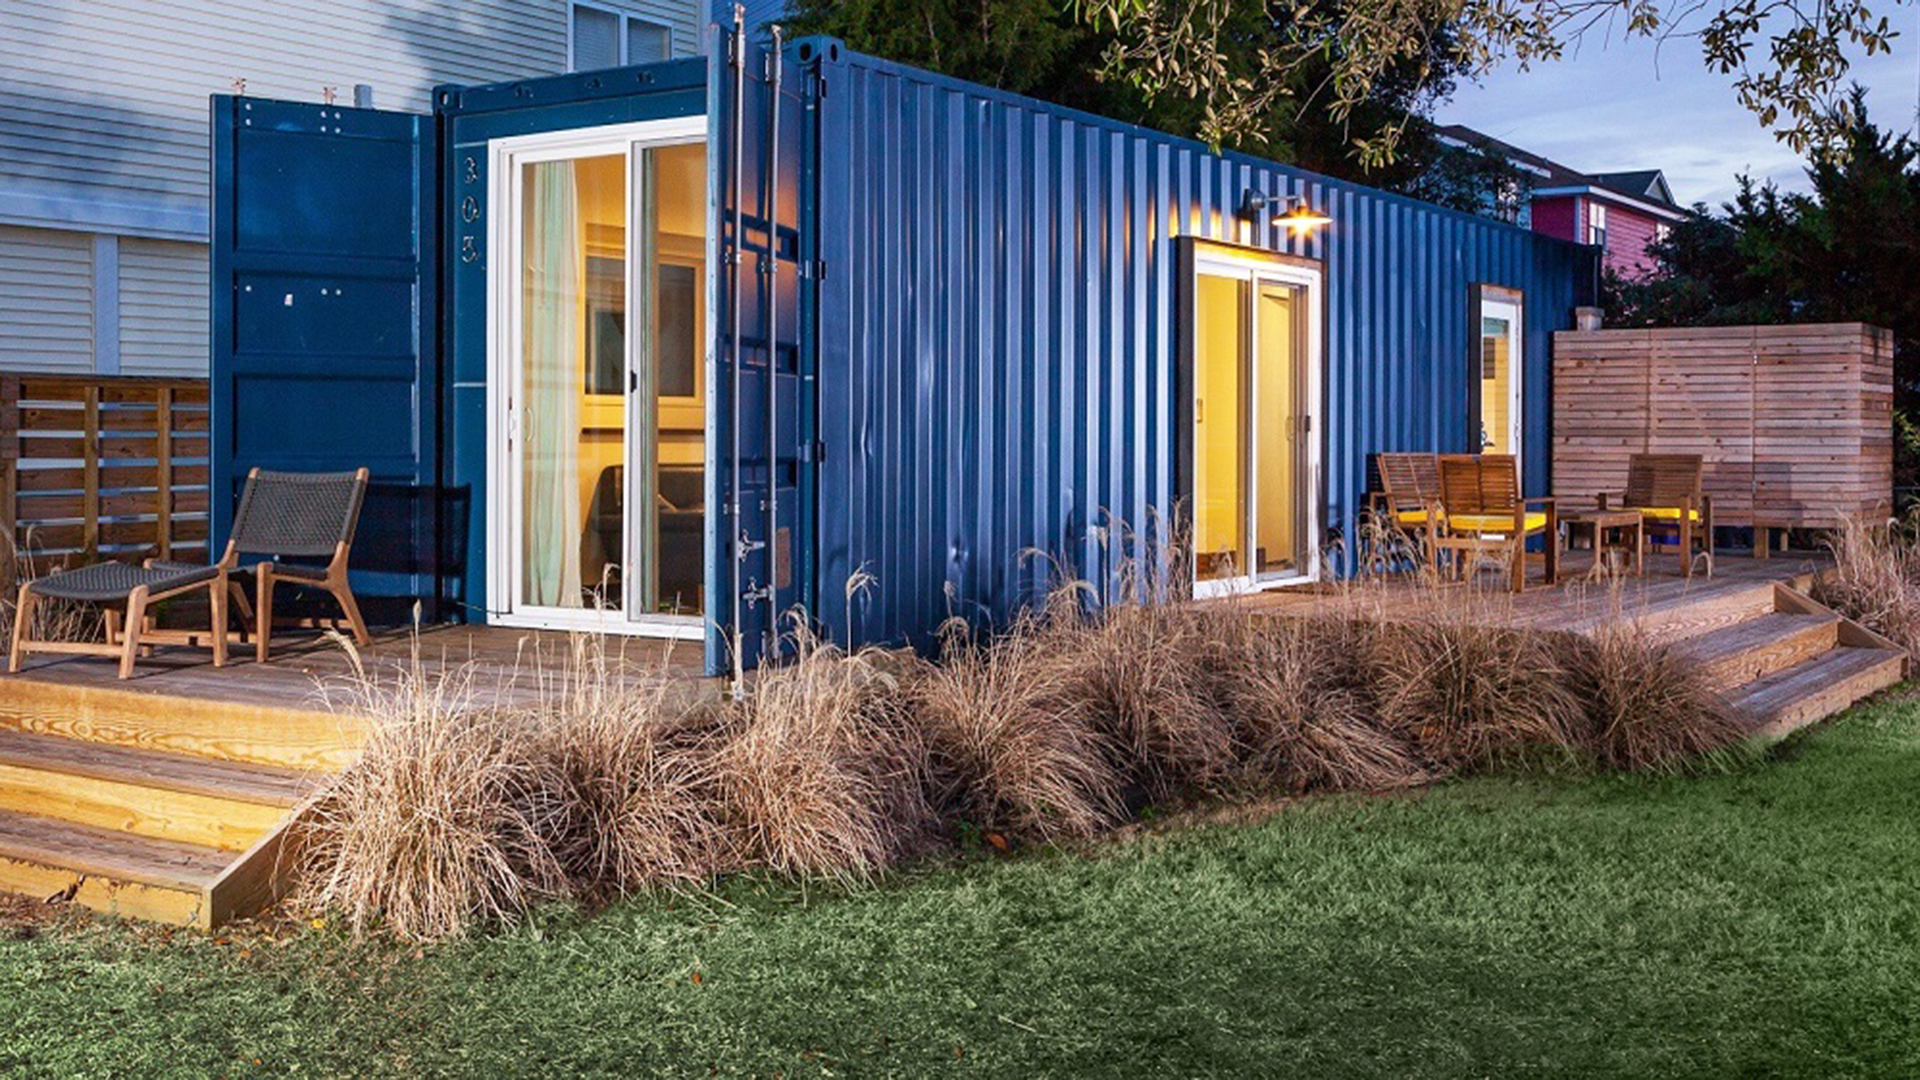 Tiny Home Designs: See Inside This Tiny Home Made Out Of A Shipping Container